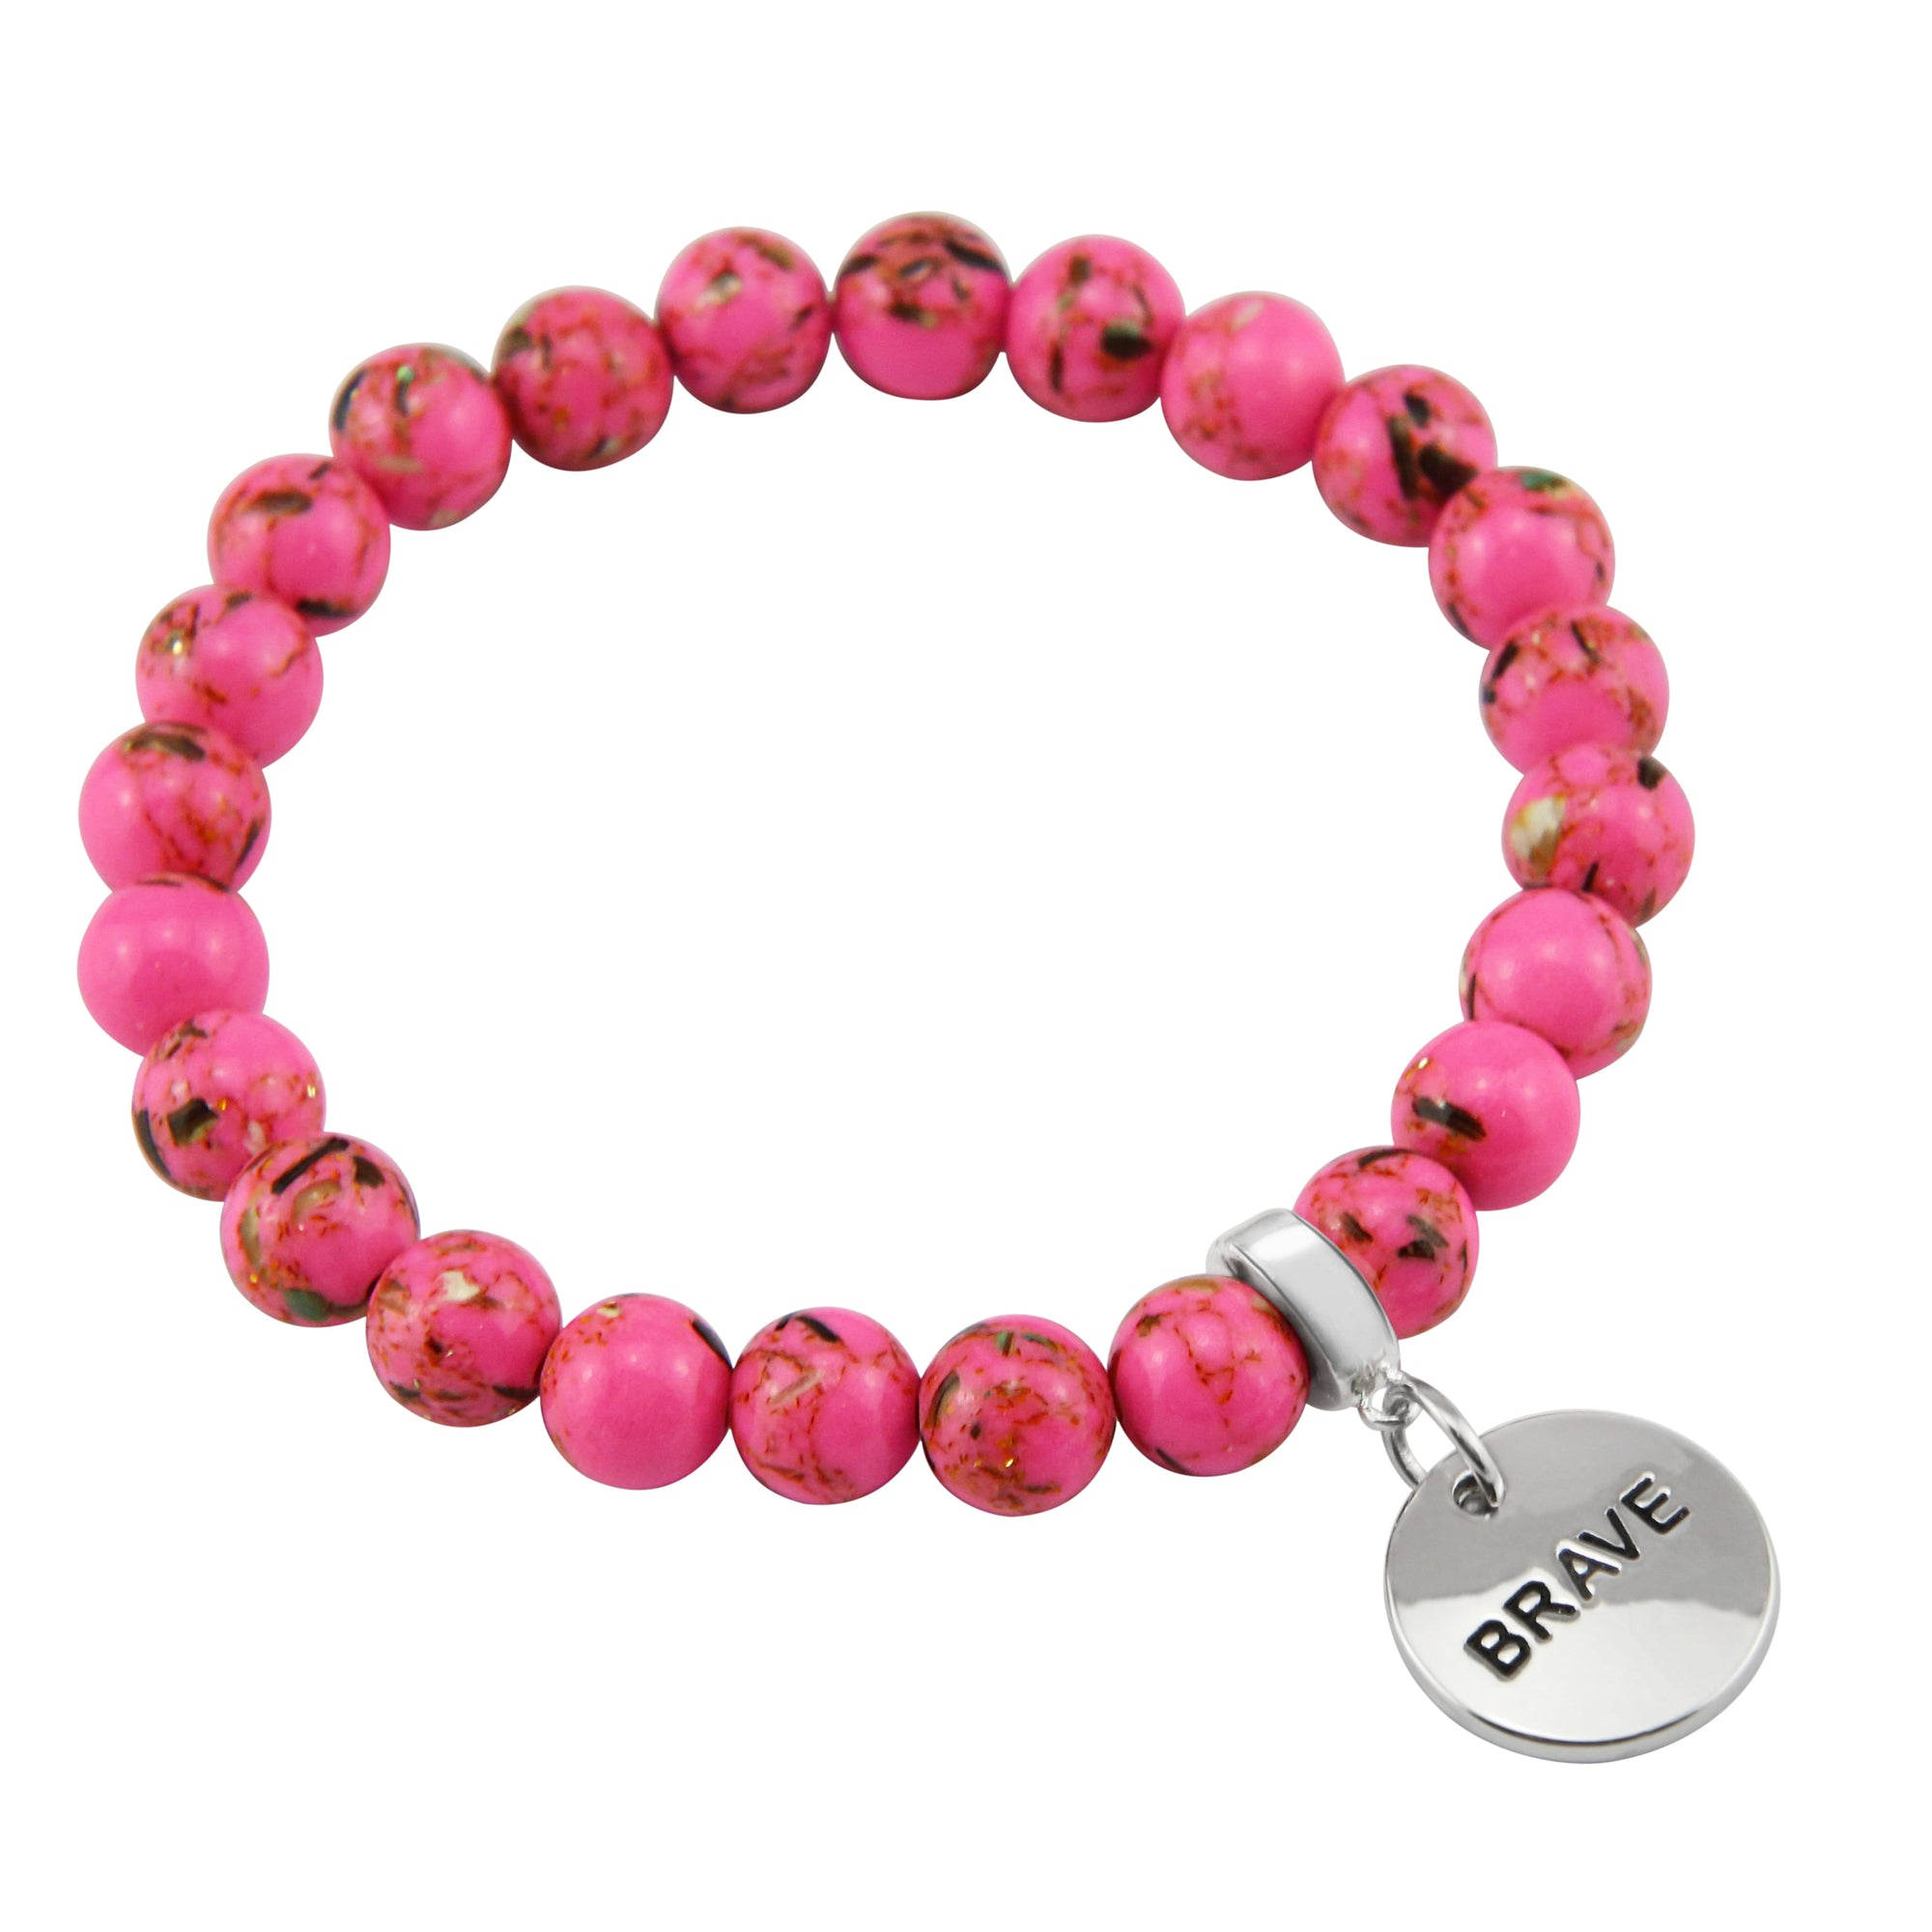 PINK COLLECTION - Hot Pink Synthesis 8mm Bead Bracelet  -  Silver Word Charms